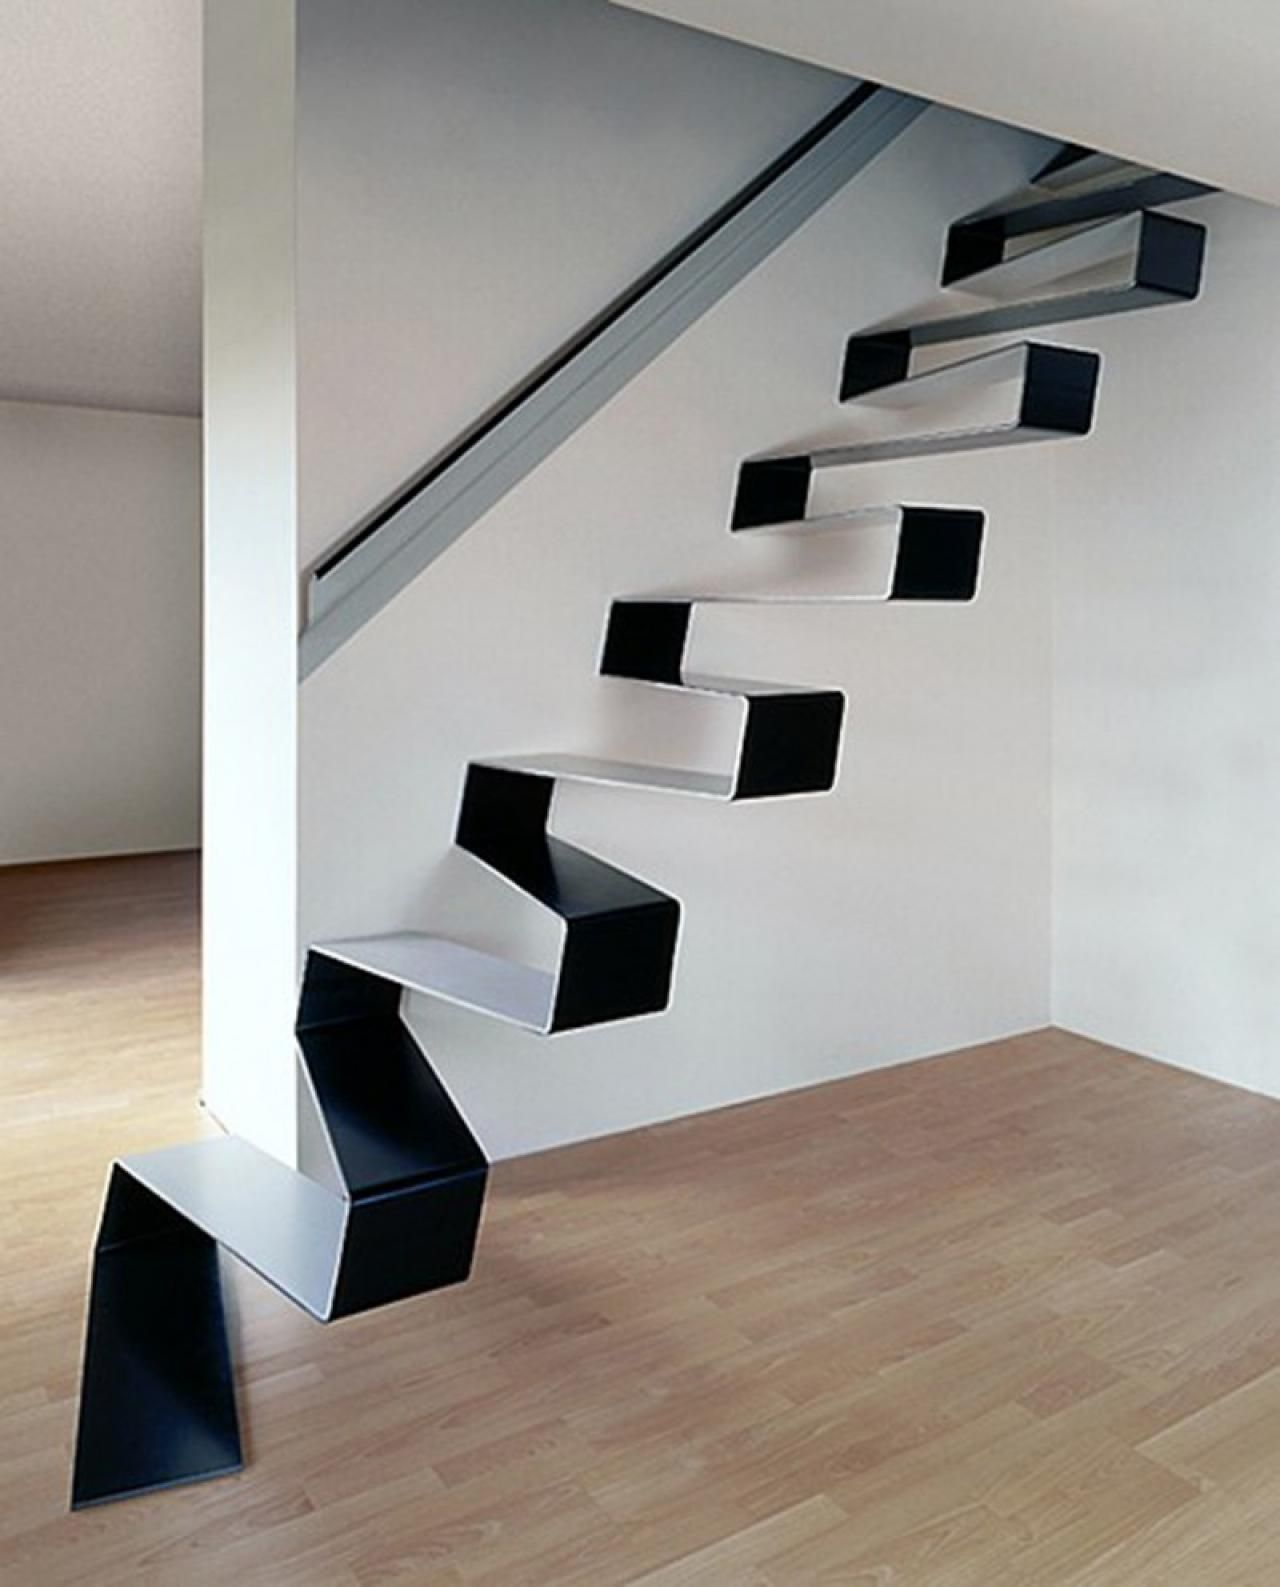 Decorating A Staircase Ideas Inspiration: 21 Surreal Designs You Should Actually Use In Your Home